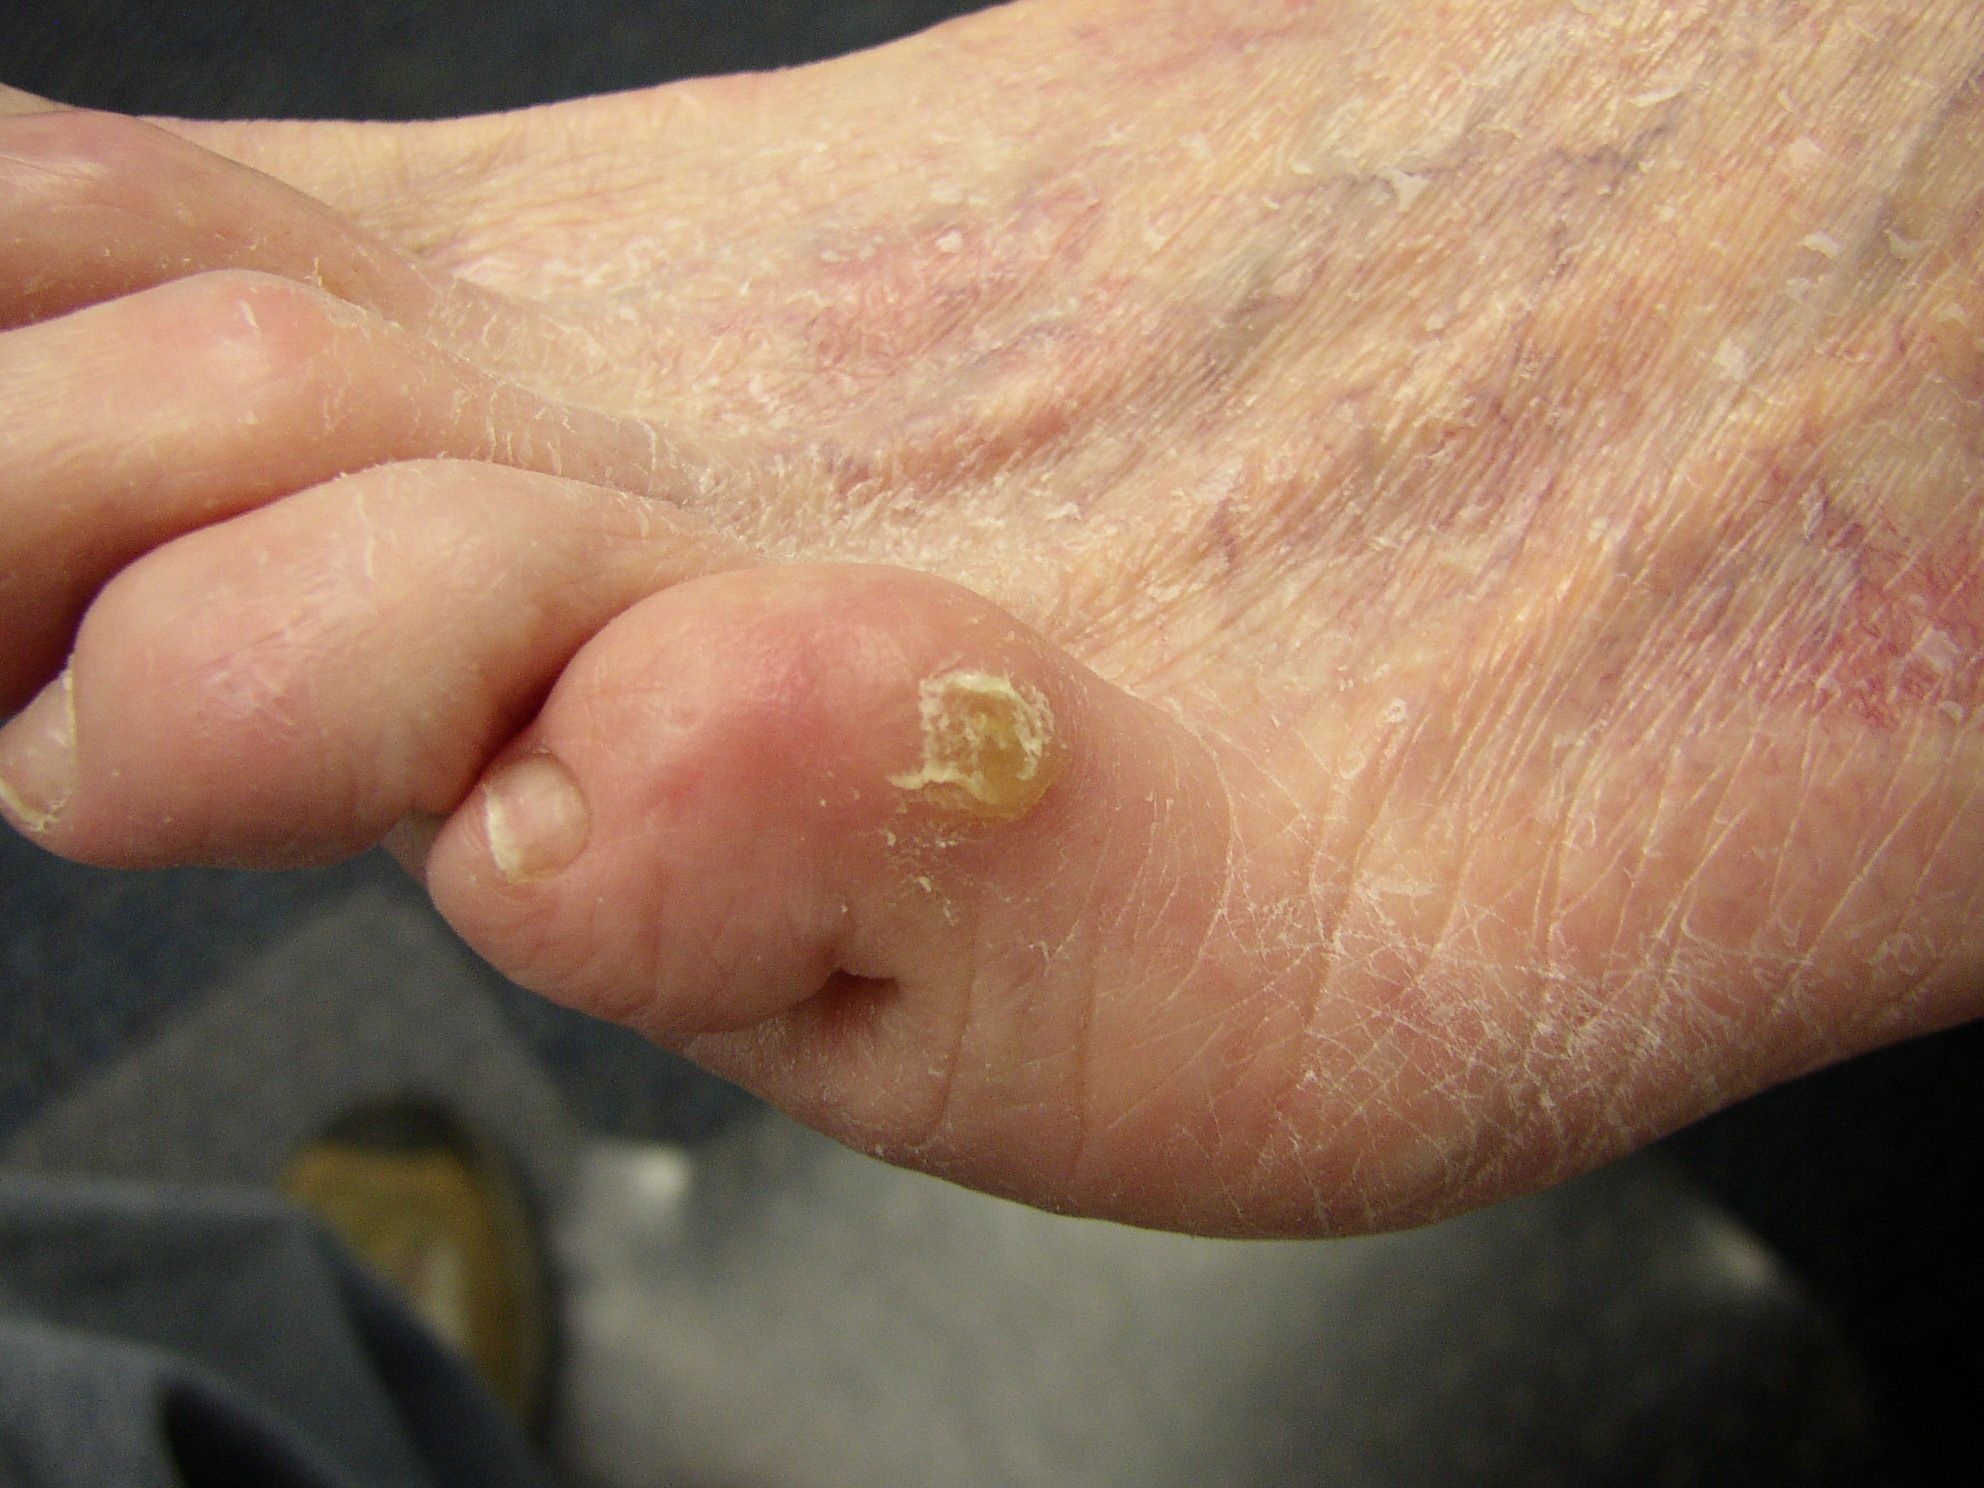 3abfd7abf44701517b6f09faecd25dea - How To Get Rid Of Rough Skin On Big Toe